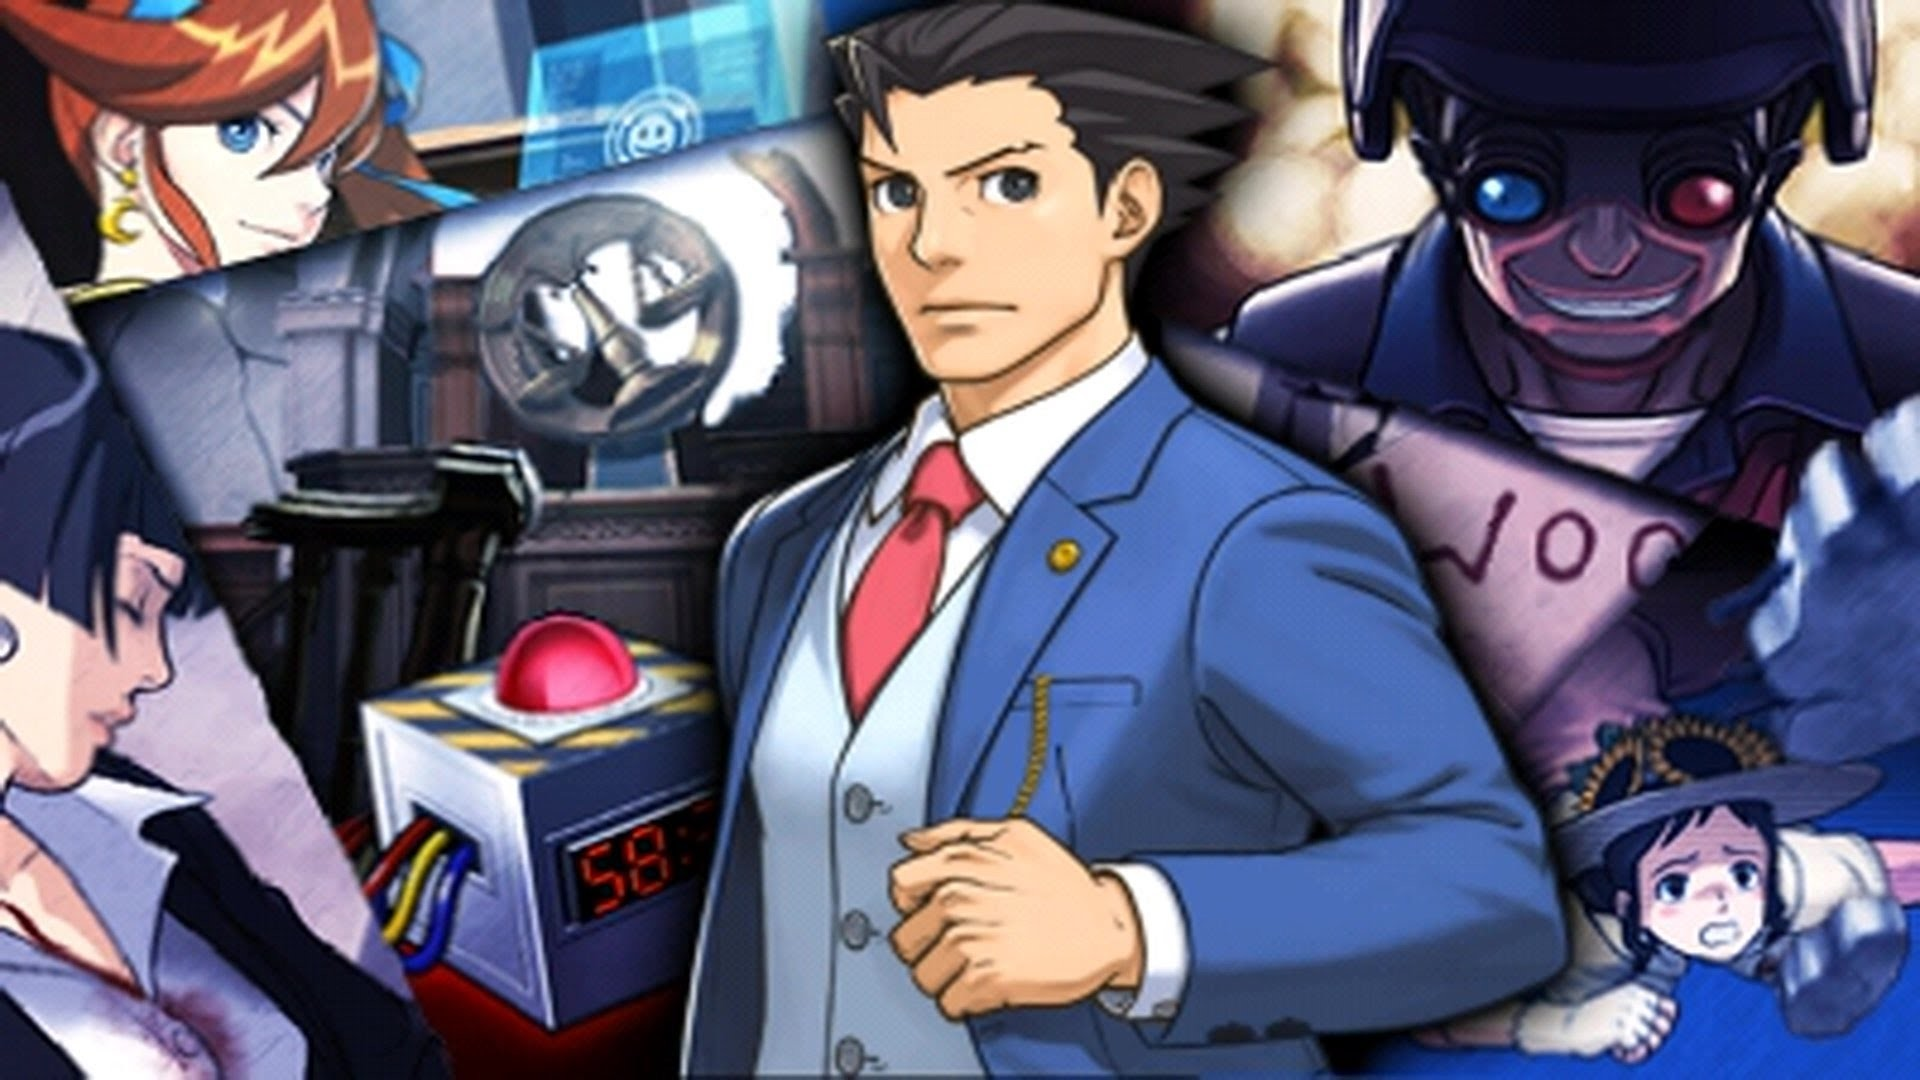 1920x1080 Phoenix Wright: Ace Attorney - Dual Destinies - Episode 1: Turnabout  Countdown Playthrough [3DS] - YouTube